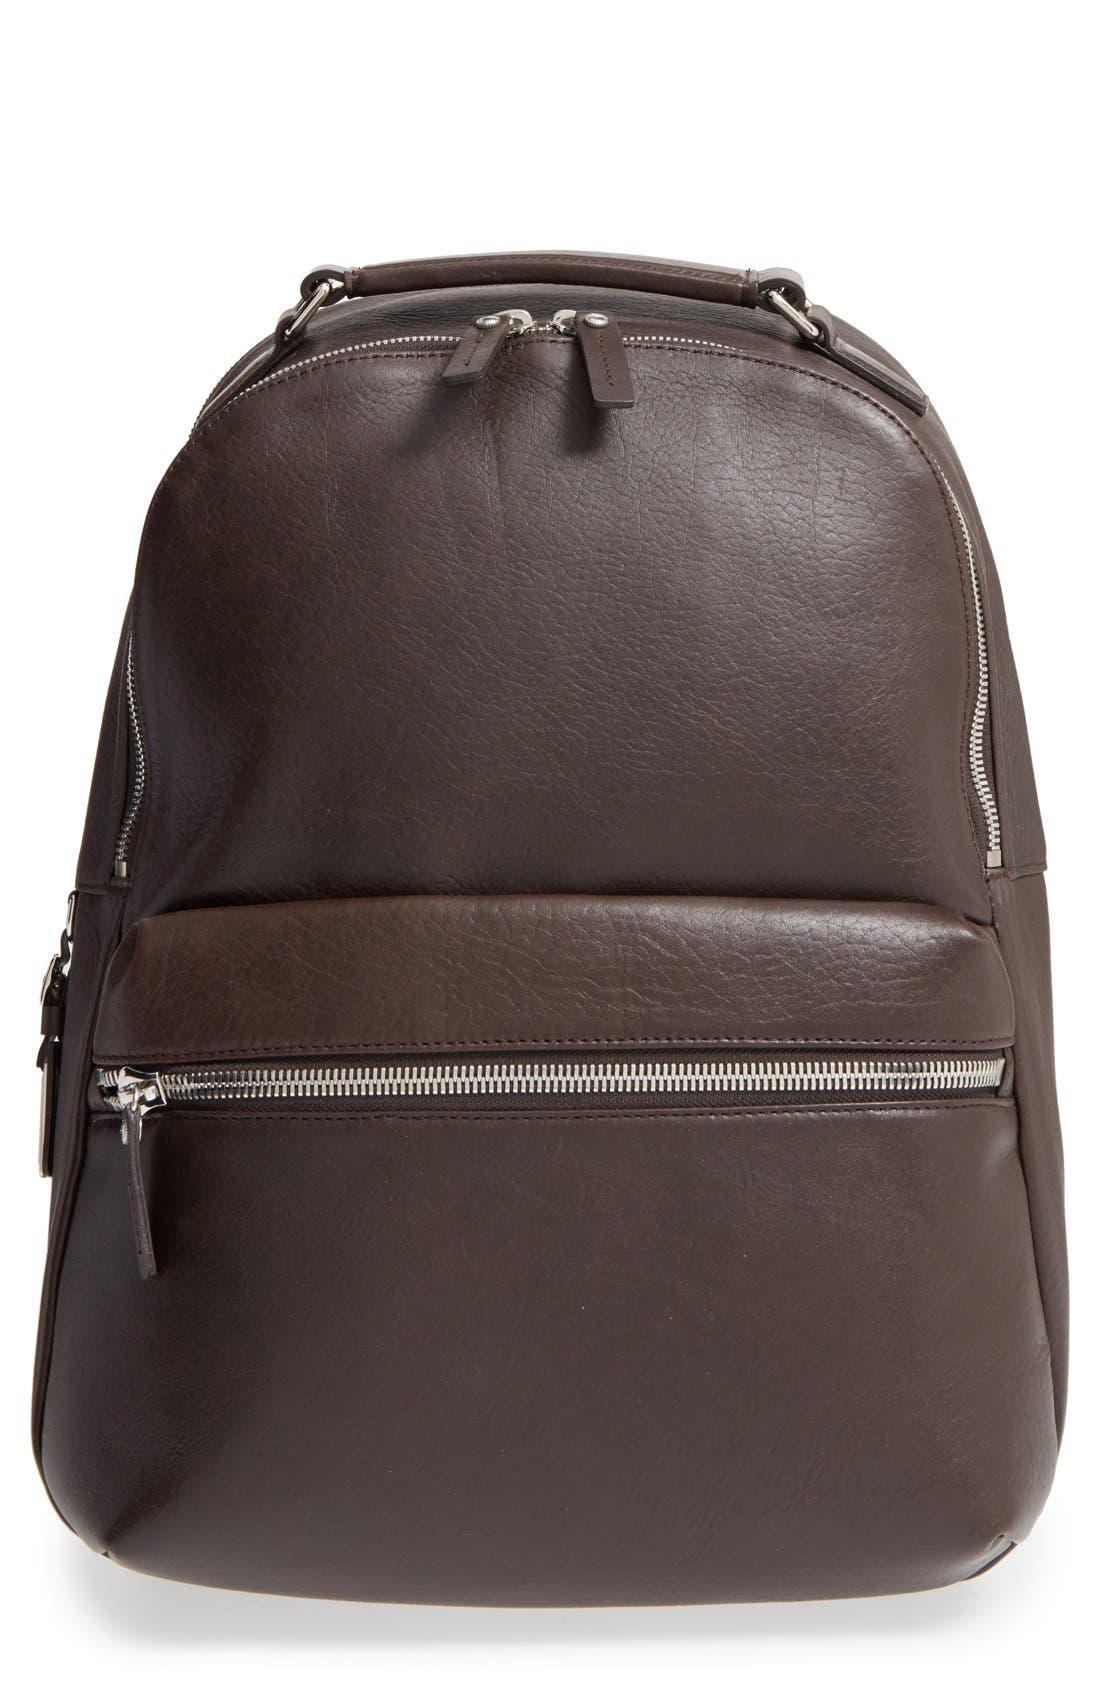 Alternate Image 1 Selected - Shinola Runwell Leather Laptop Backpack